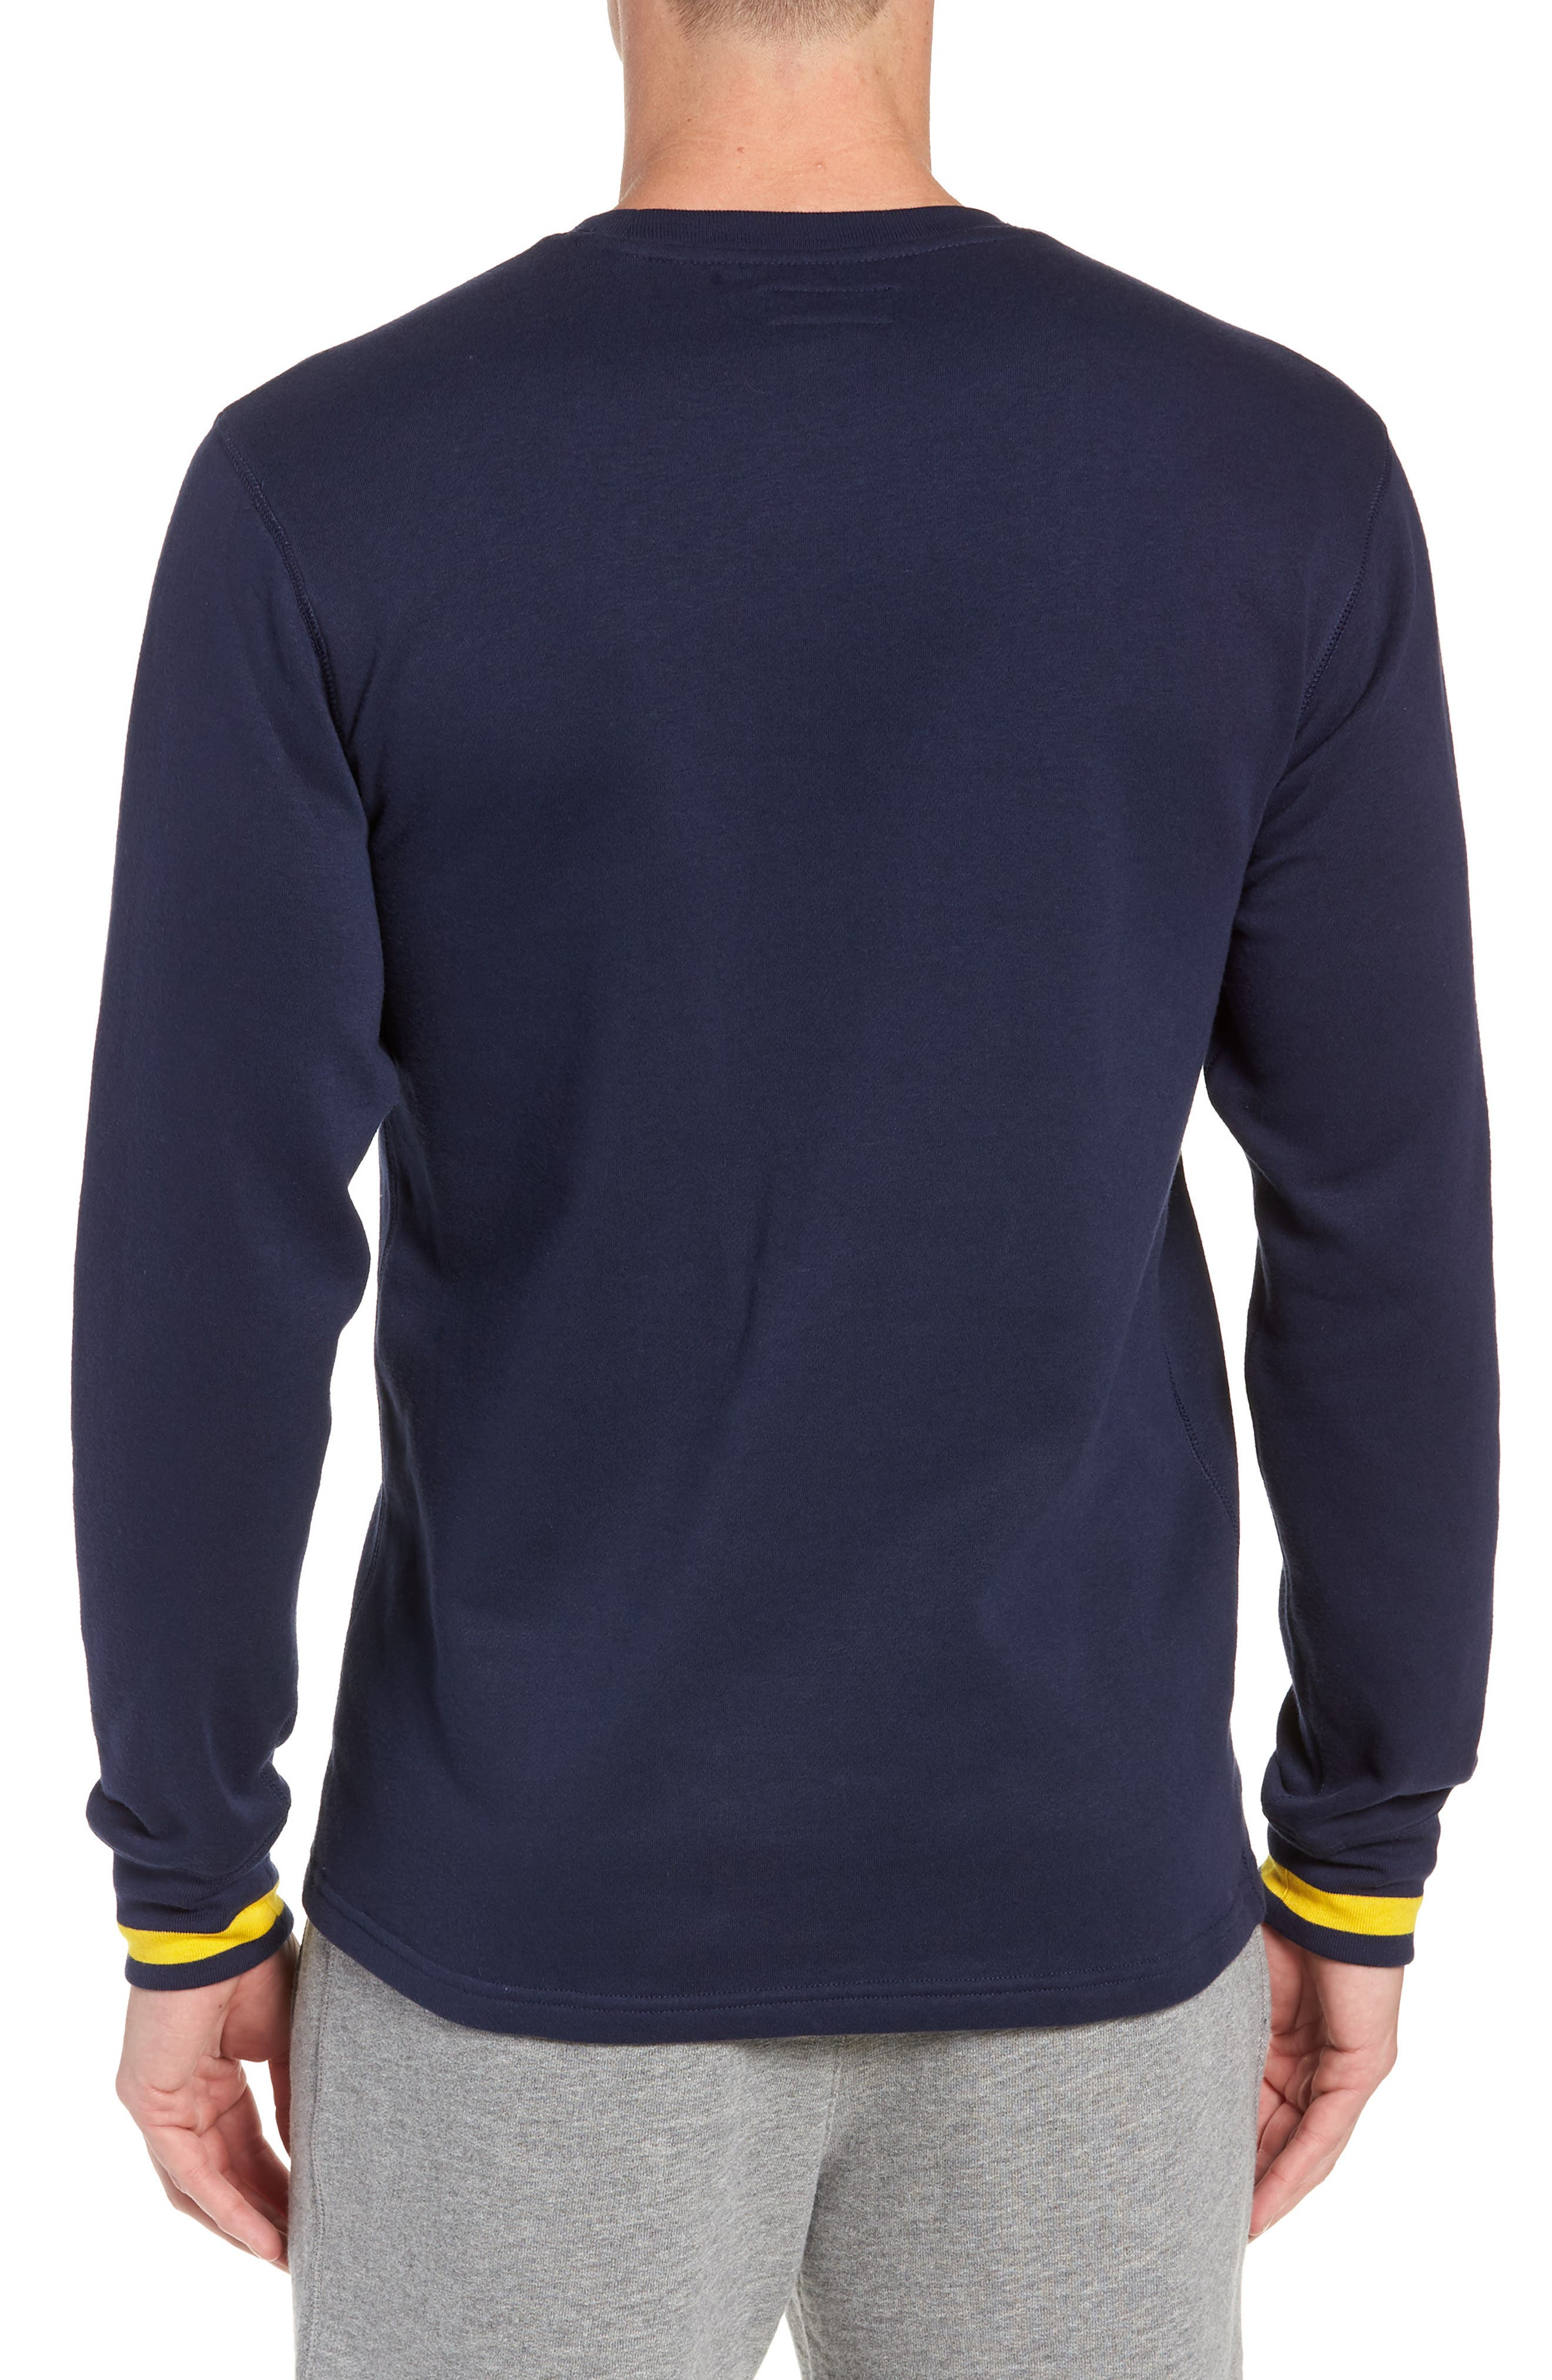 POLO RALPH LAUREN, Brushed Jersey Cotton Blend Crewneck Sweatshirt, Alternate thumbnail 2, color, CRUISE NAVY